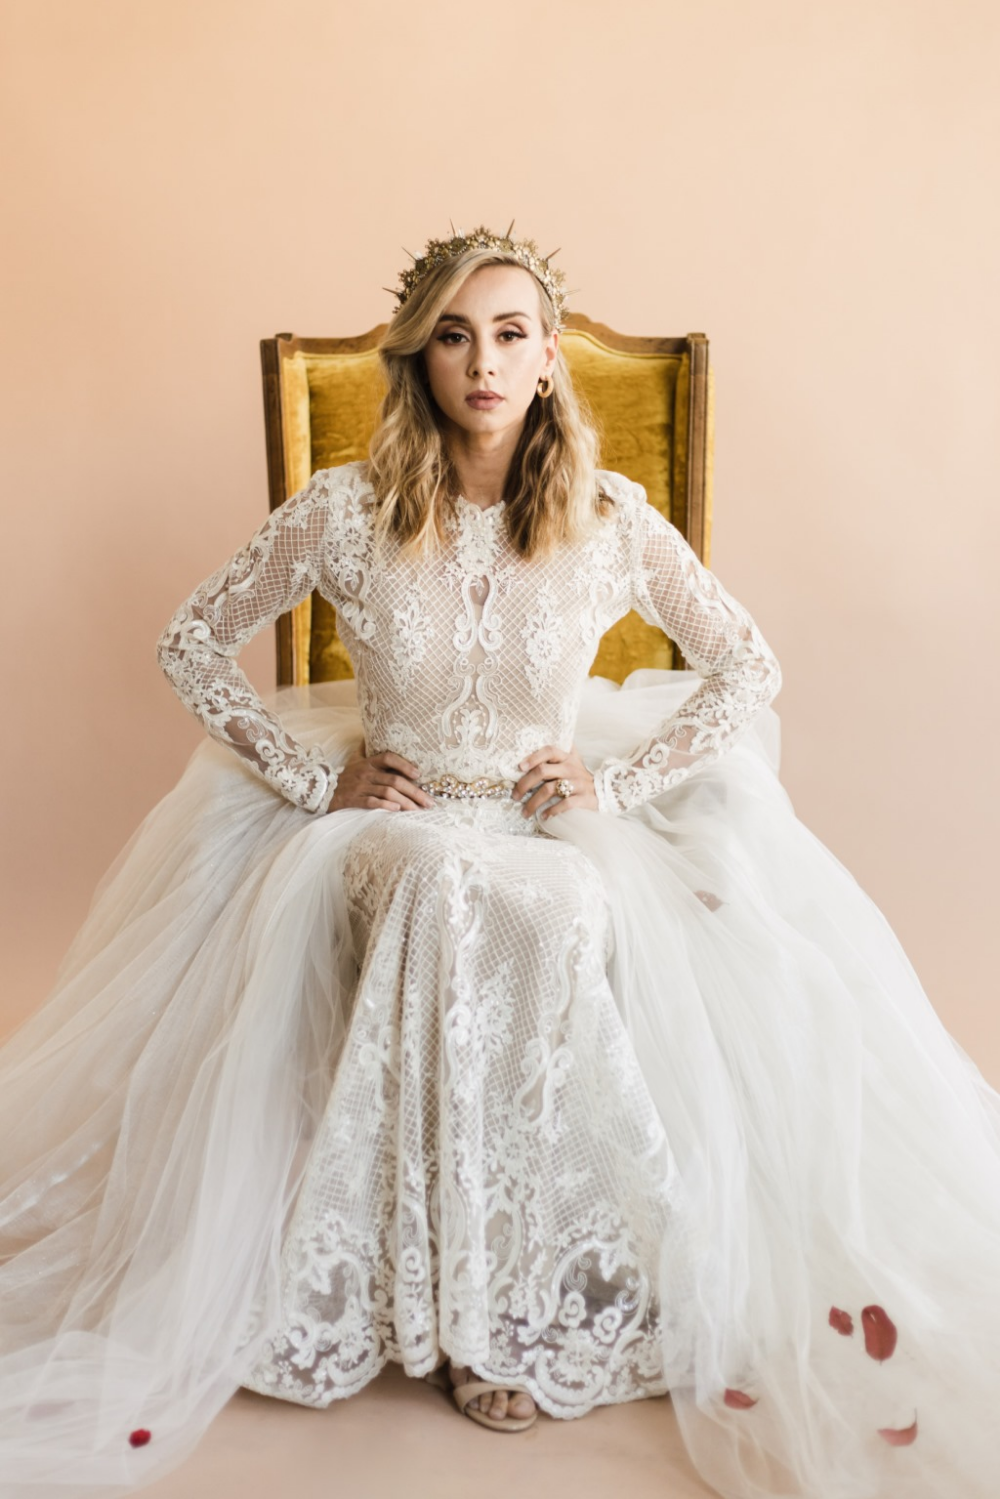 Betsy Couture Vintage Wedding Gowns Utah Dress Apparel Wedding Gowns Vintage Wedding Dress Couture Wedding Gowns Mermaid [ 1499 x 1000 Pixel ]